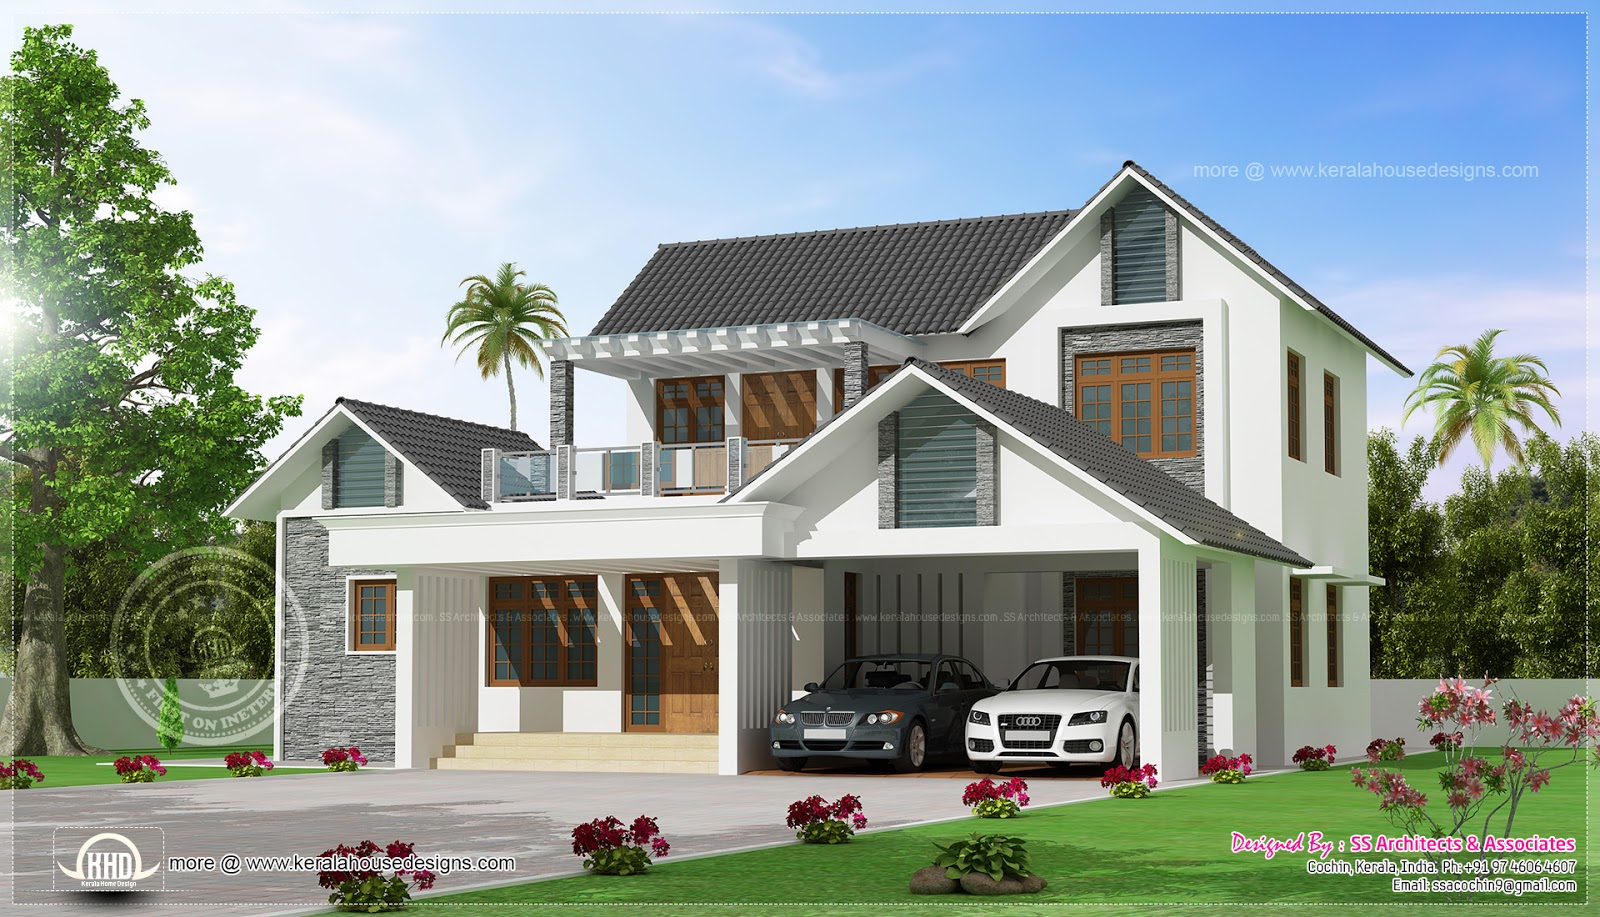 Awesome modern villa exterior elevation home kerala plans for Modern villa plans and elevations